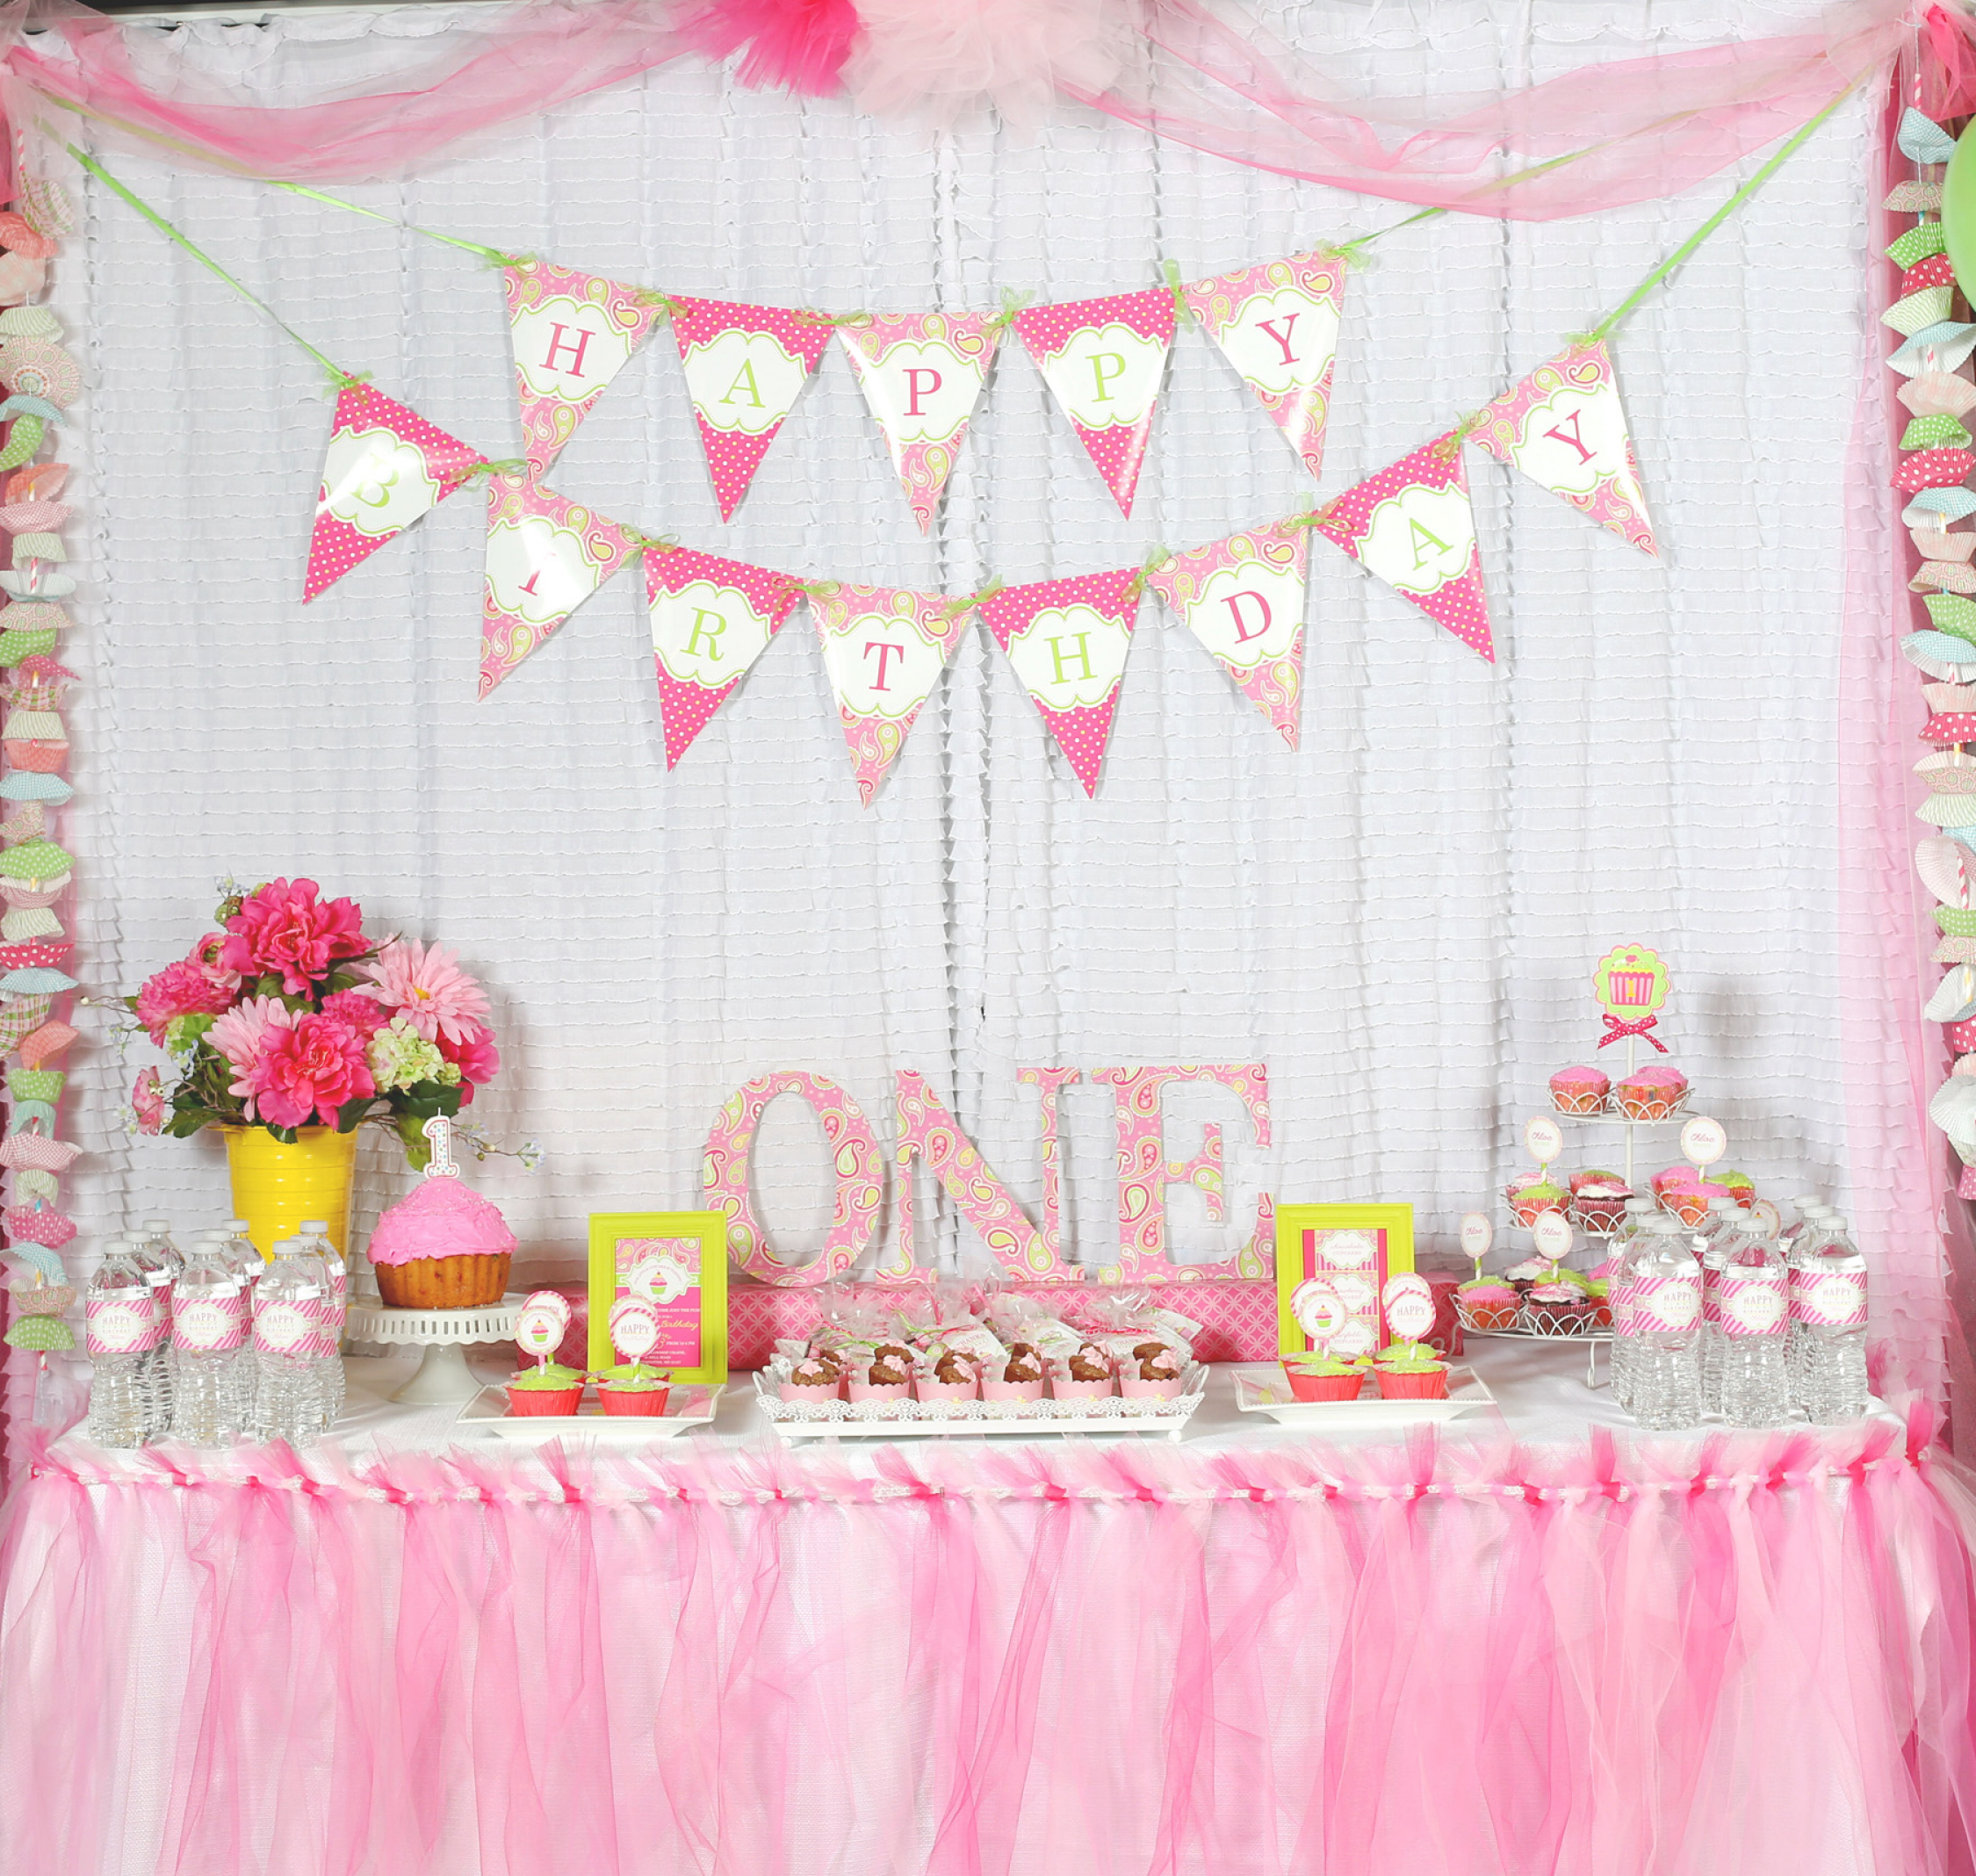 1st Birthday Girl Theme Ideas Image Inspiration of Cake and